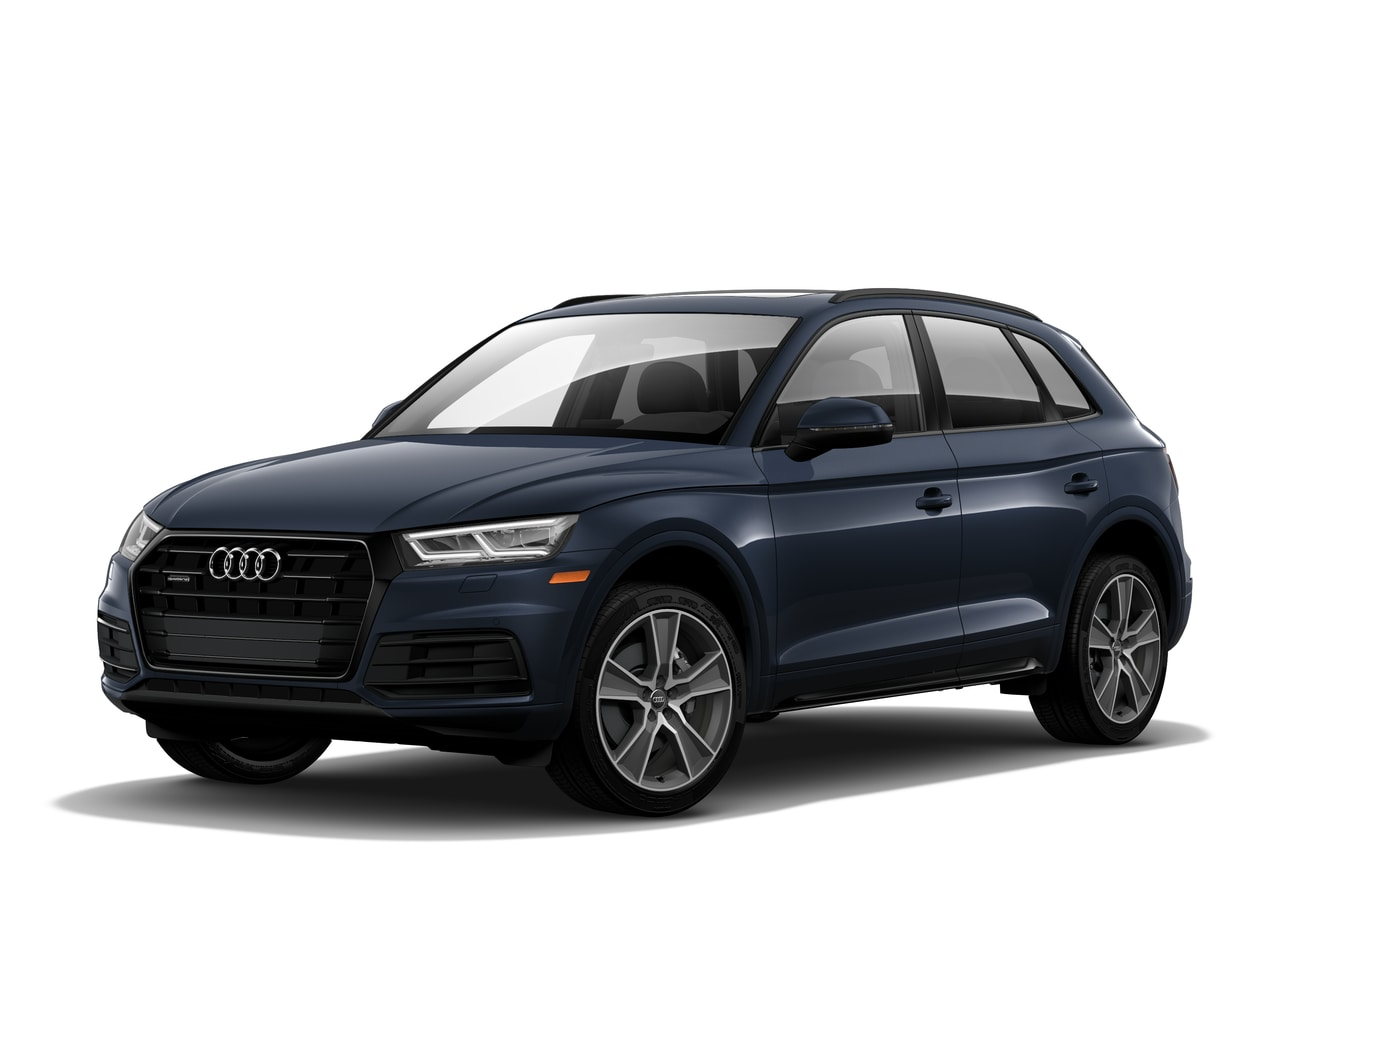 2019 Audi Q5 For Sale in East Hartford CT | Hoffman Audi